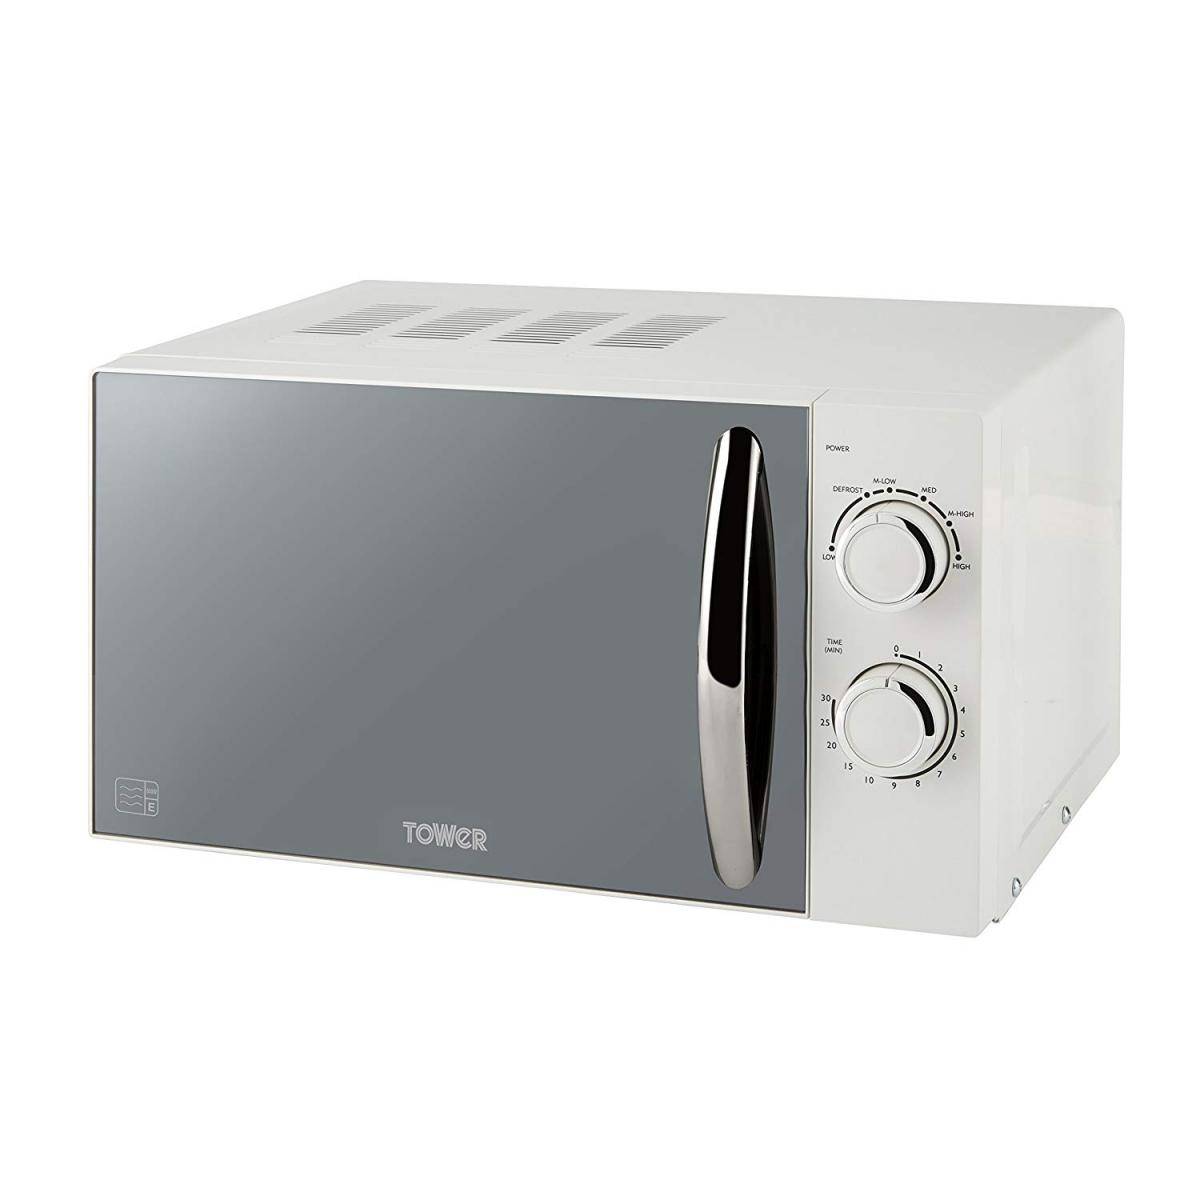 800w White Microwave with Mirror Door 800w – Now Only £69.00